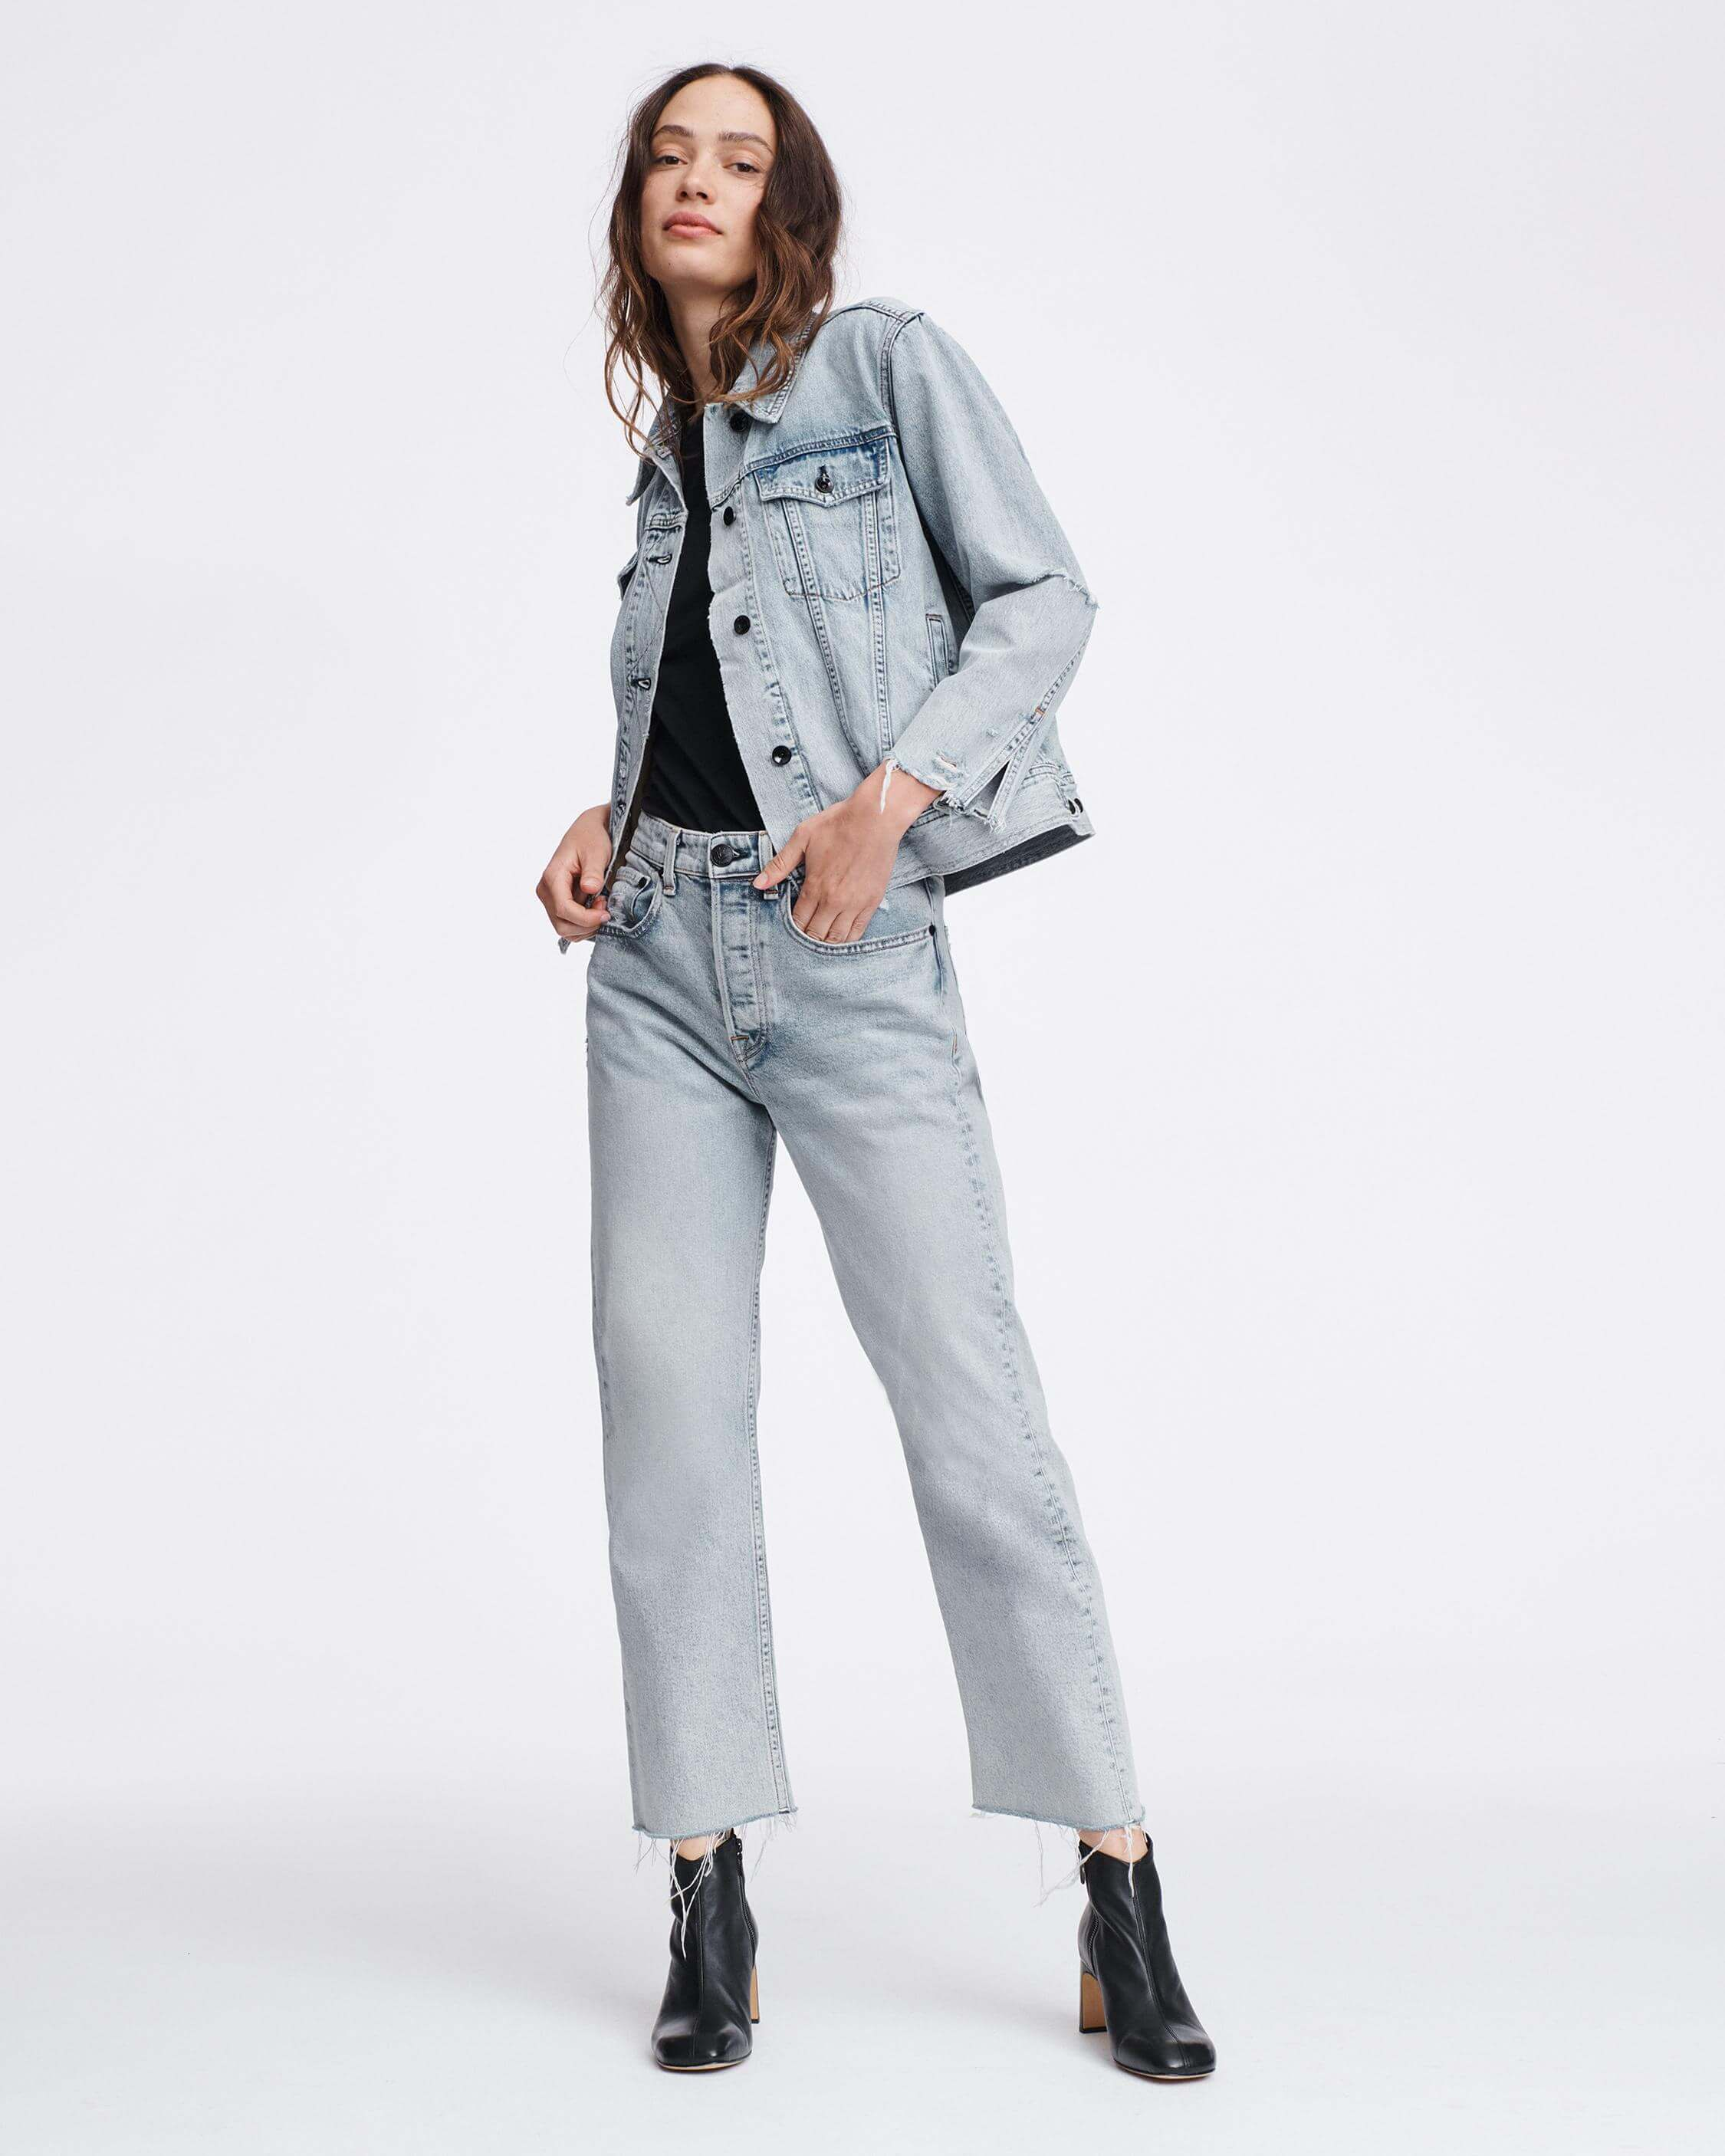 Rag and Bone sustainable womenswear NYC